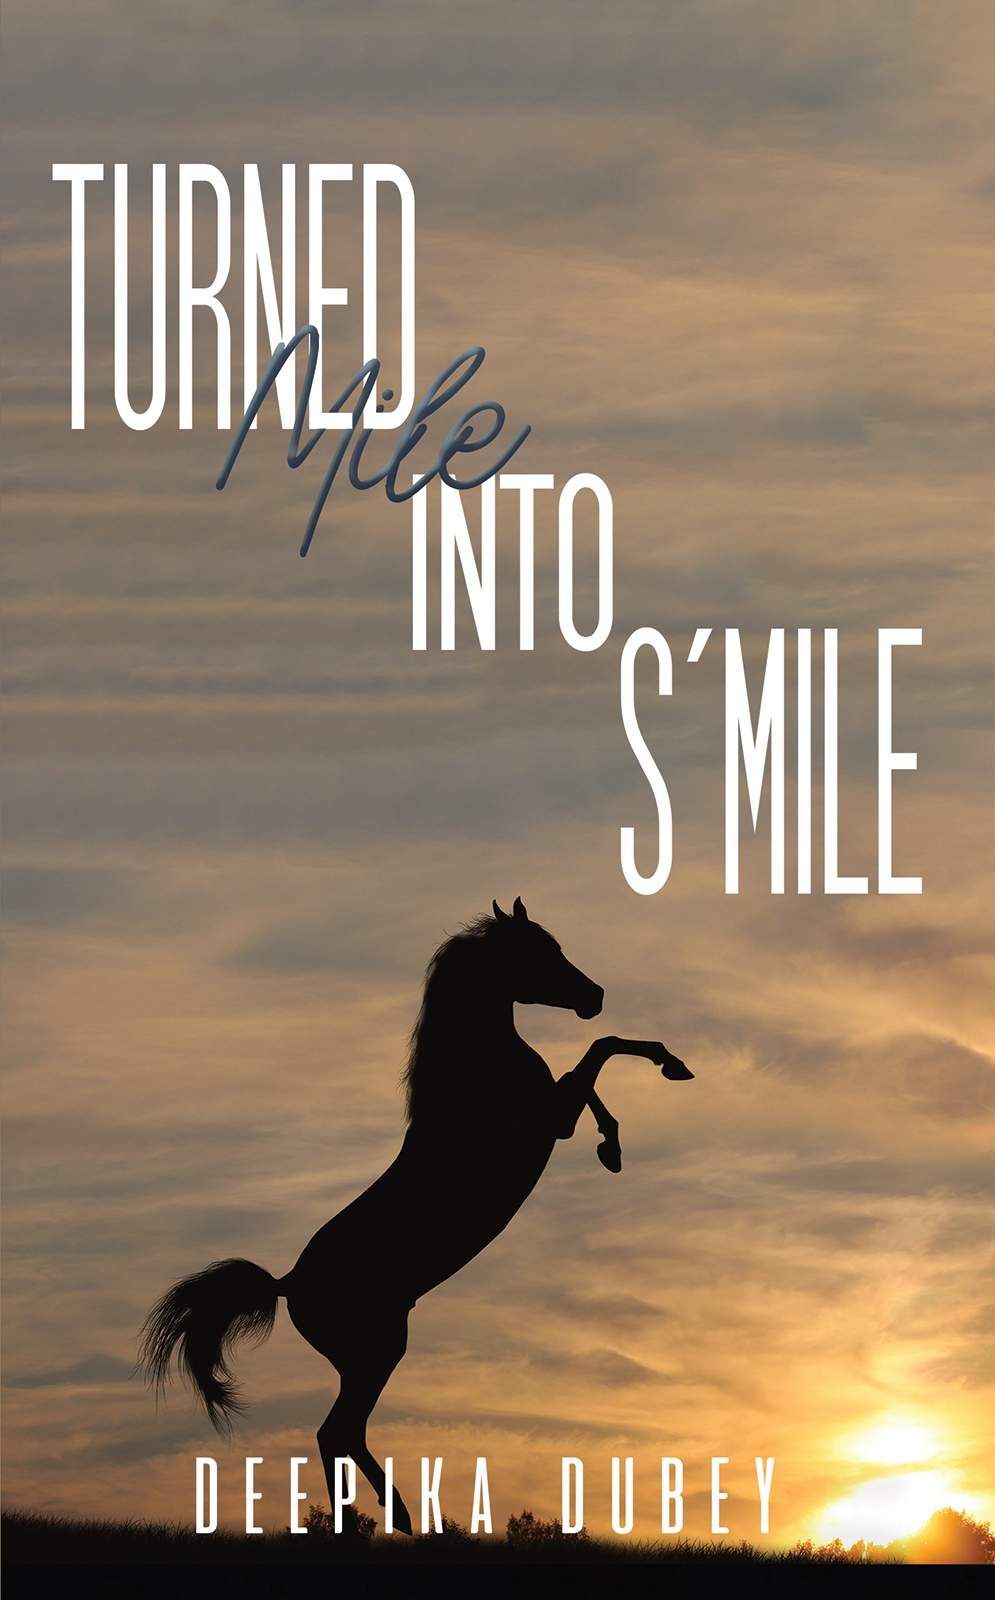 Turned Mile into S'mile